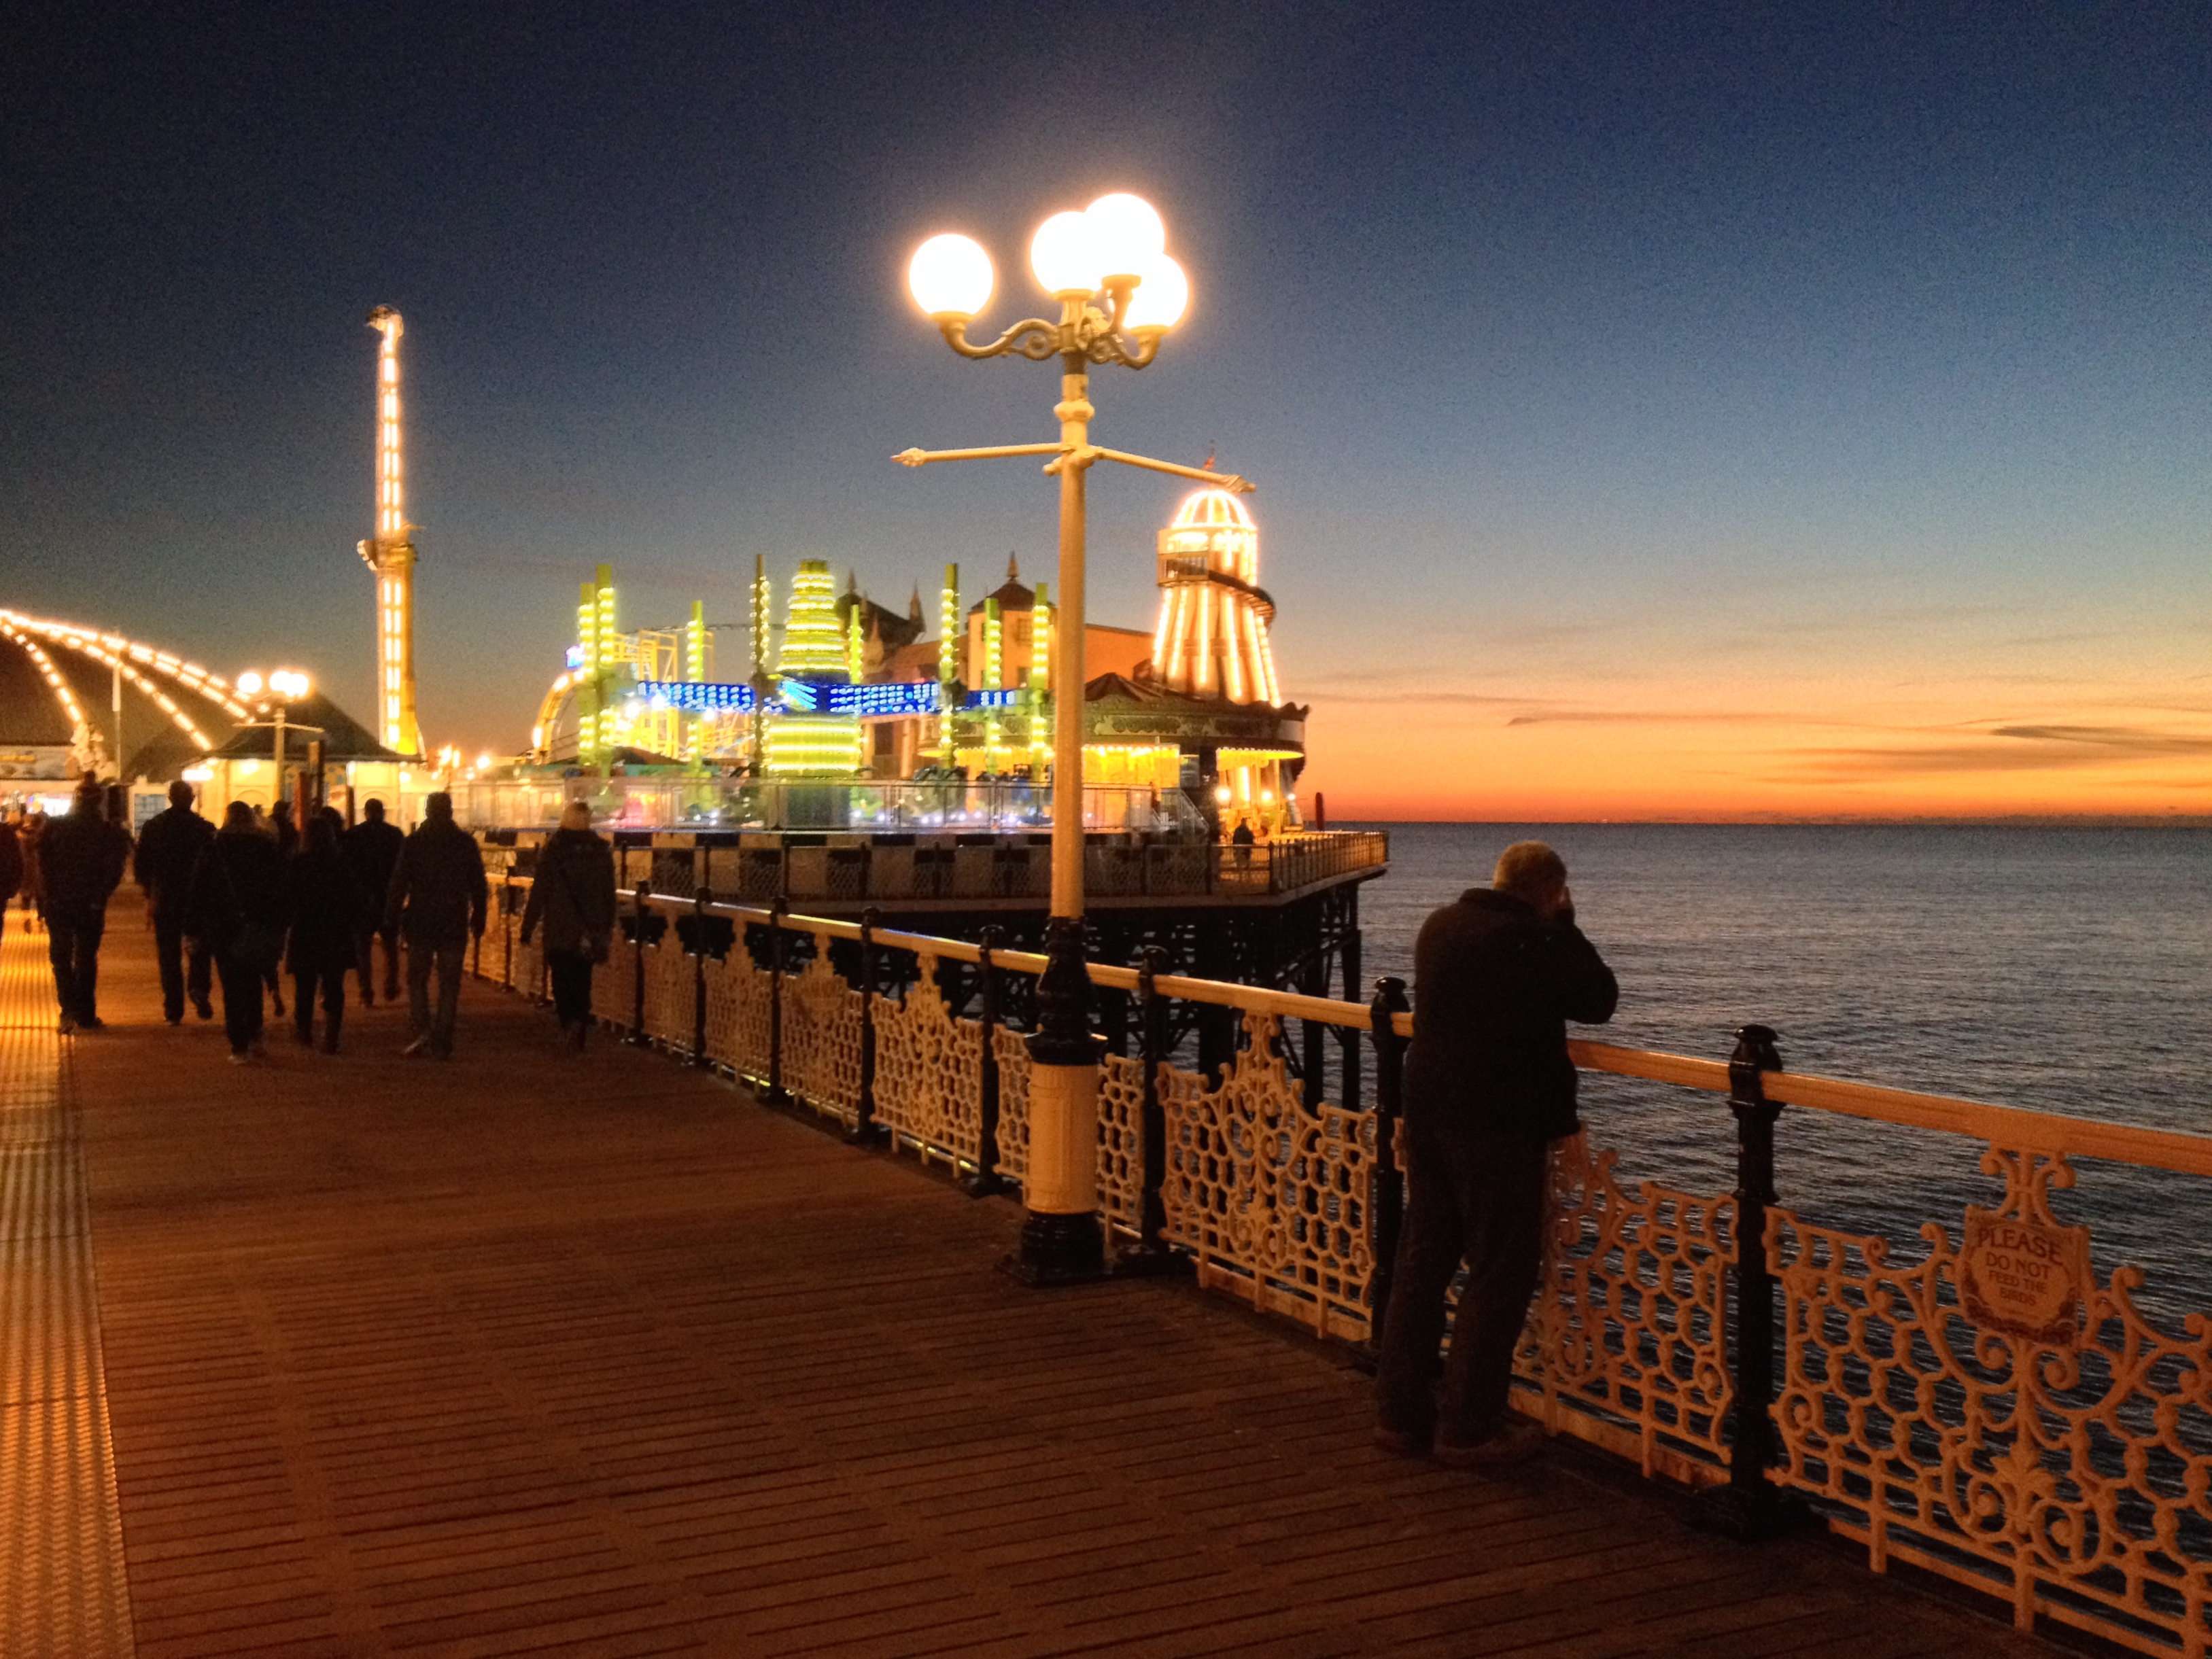 Brighton Pier illuminated